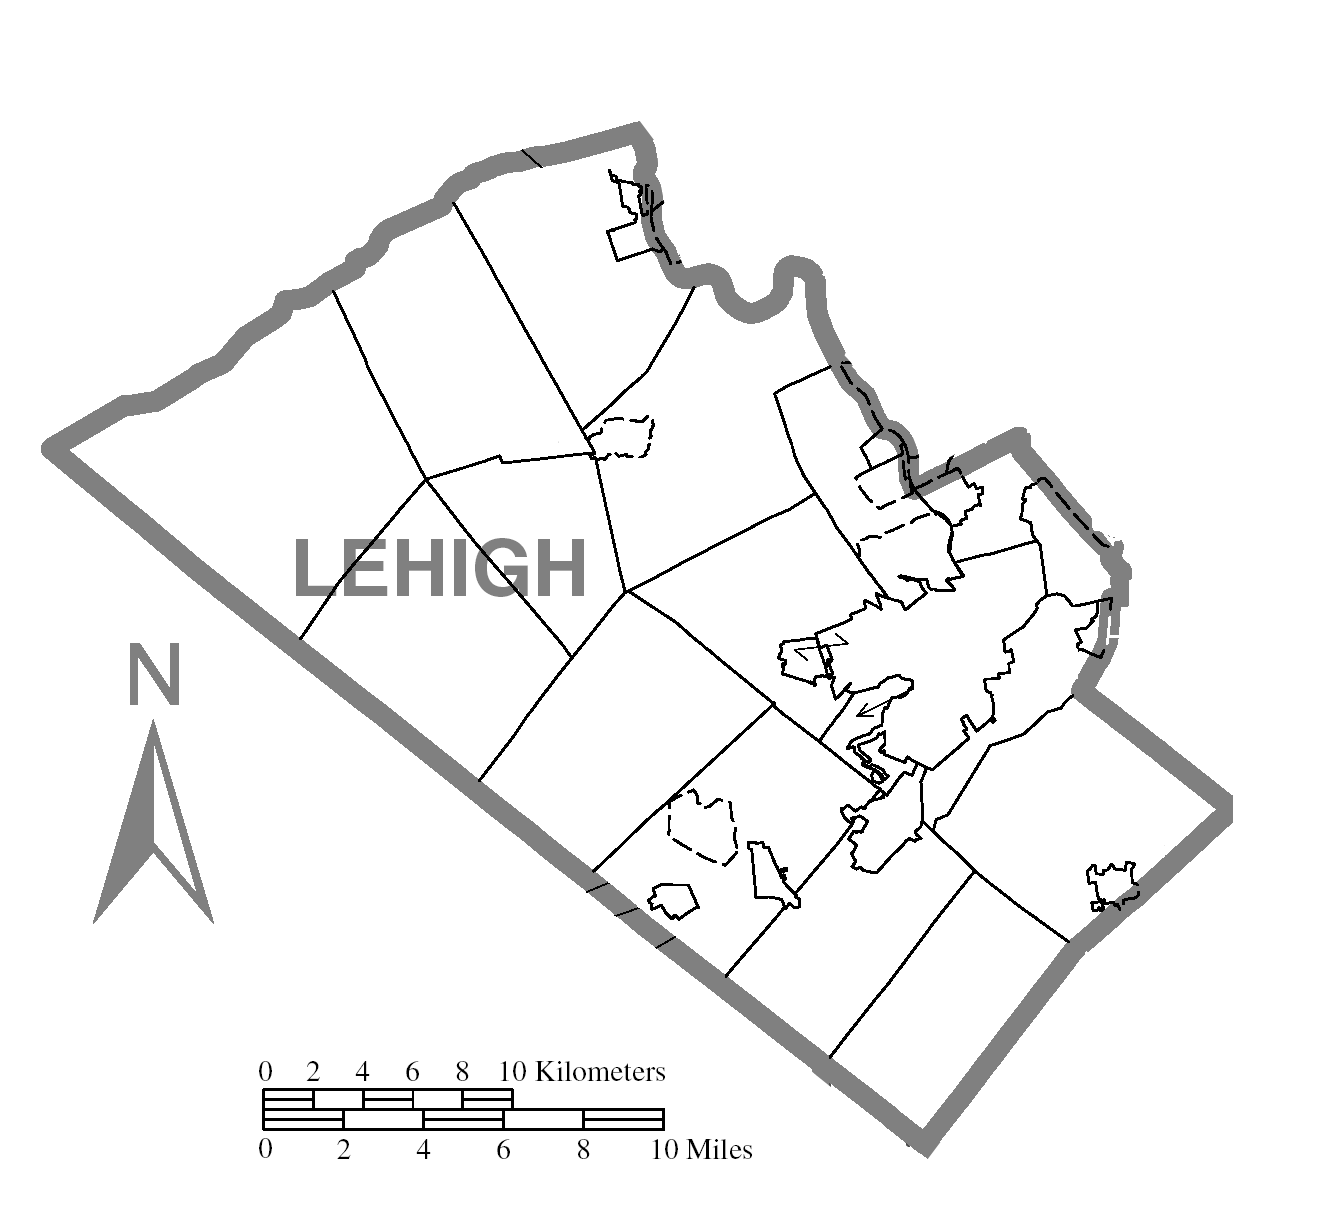 lehigh county Lehigh county, pa homes for rent, real estate rentals, and recently listed rental property view for rent listing photos, property features, and use our match filters to find your perfect rental home in lehigh county, pa.